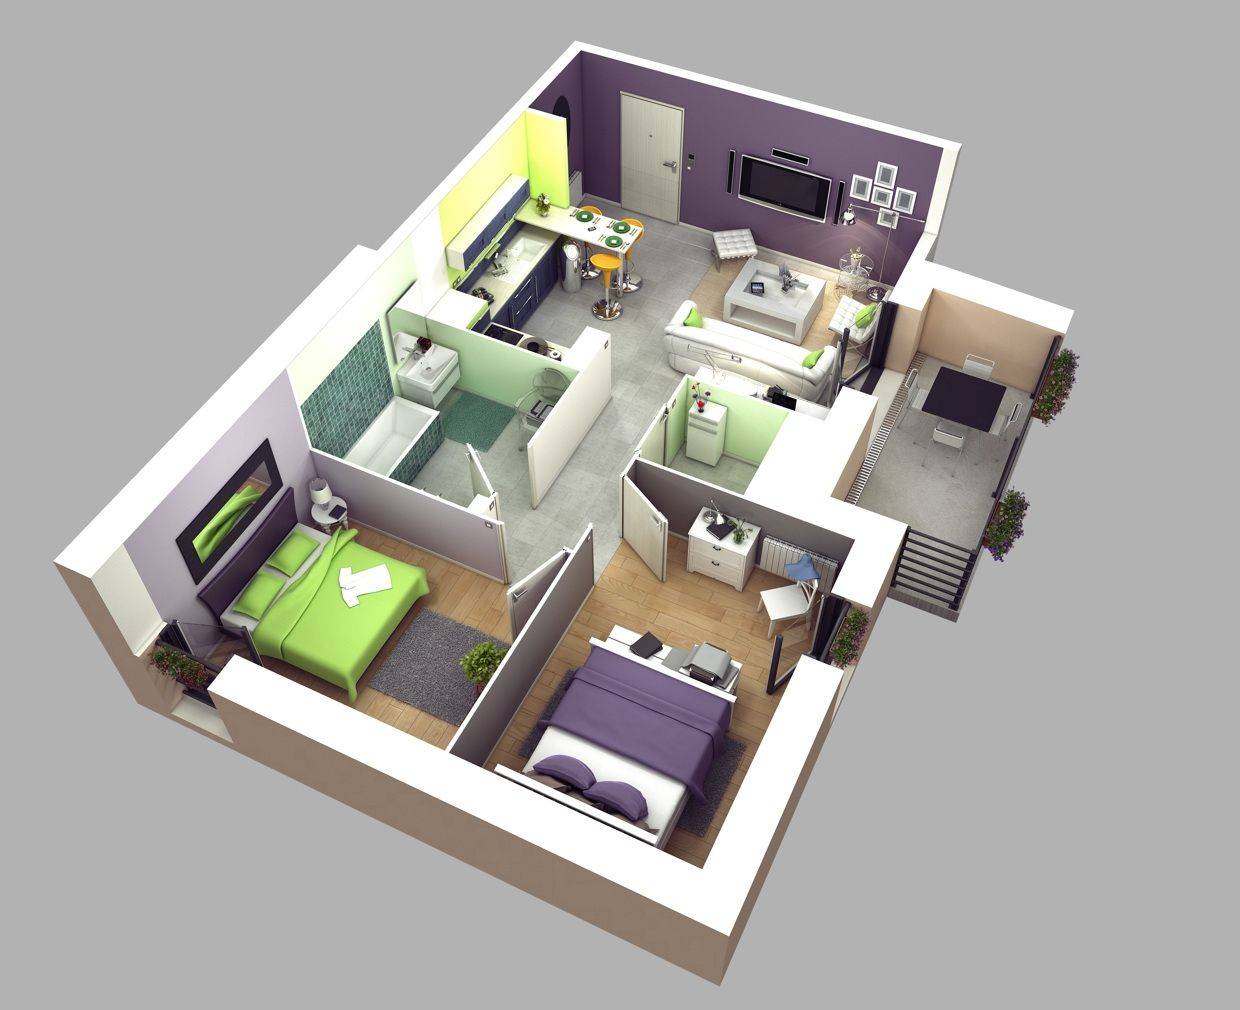 50 Two 2 Bedroom Apartment House Plans Con Imagenes Planos